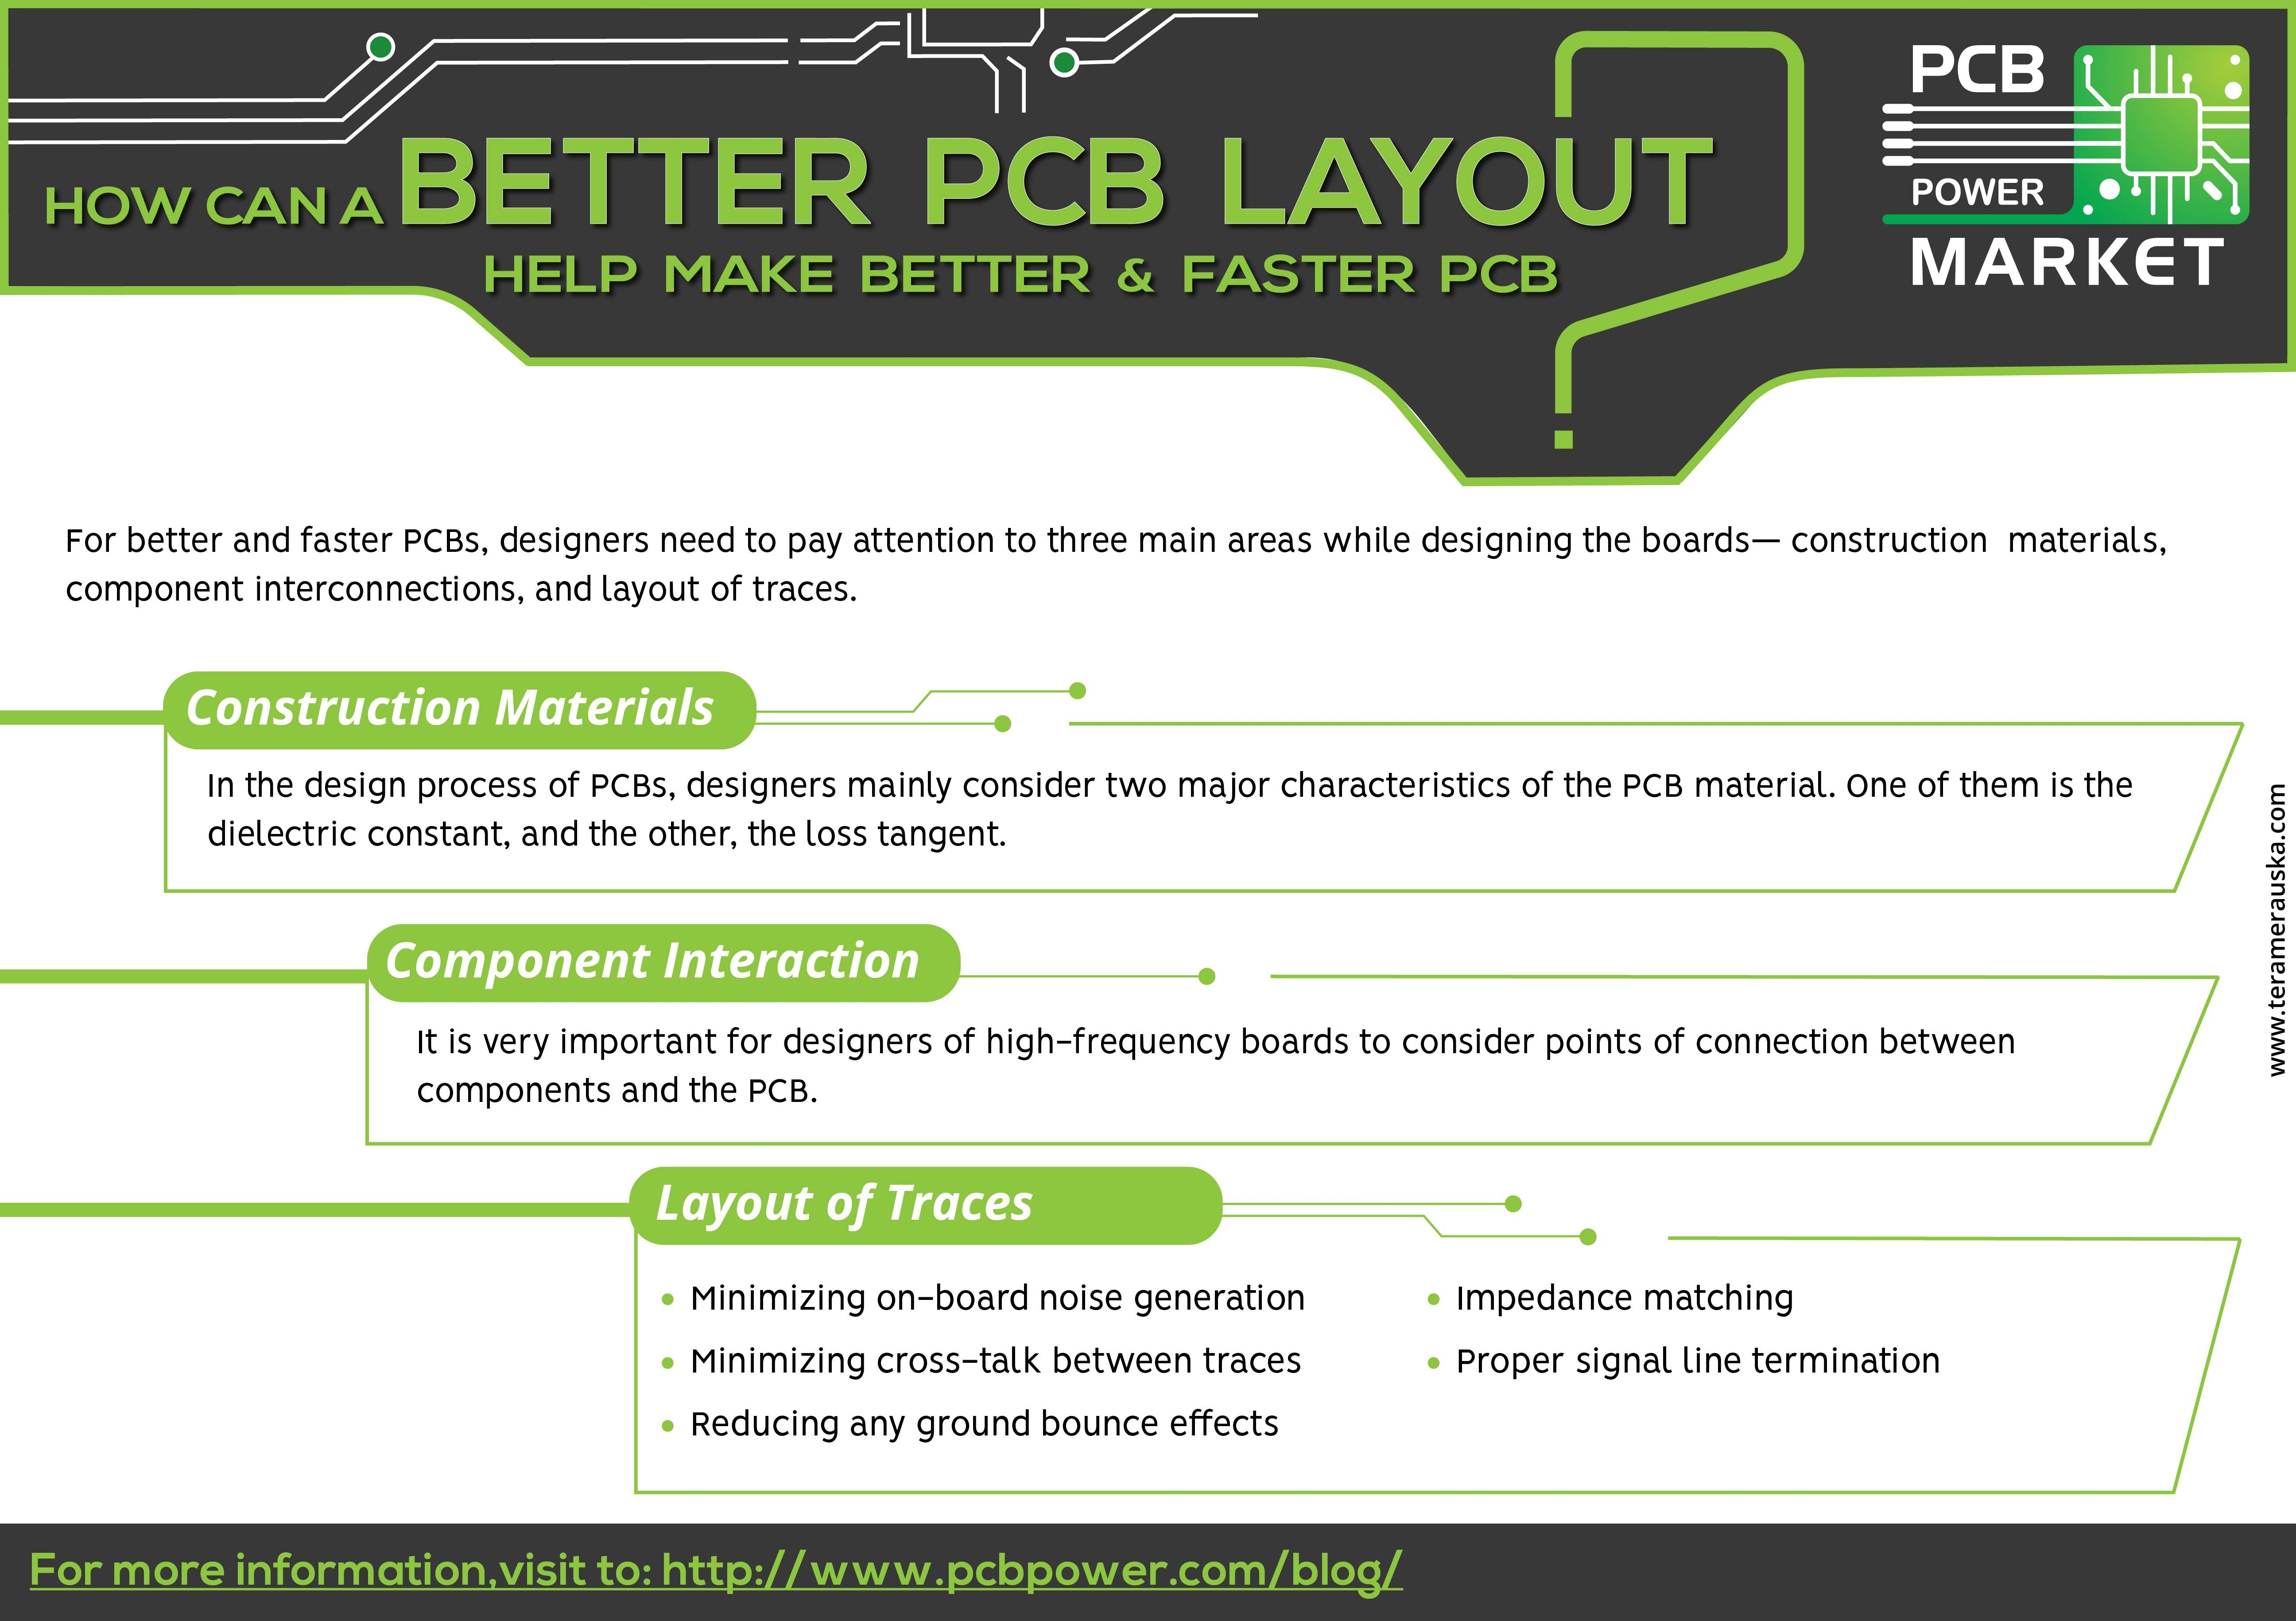 Resistor - PCB Power Market How Can A Better PCB Layout Help Make ...